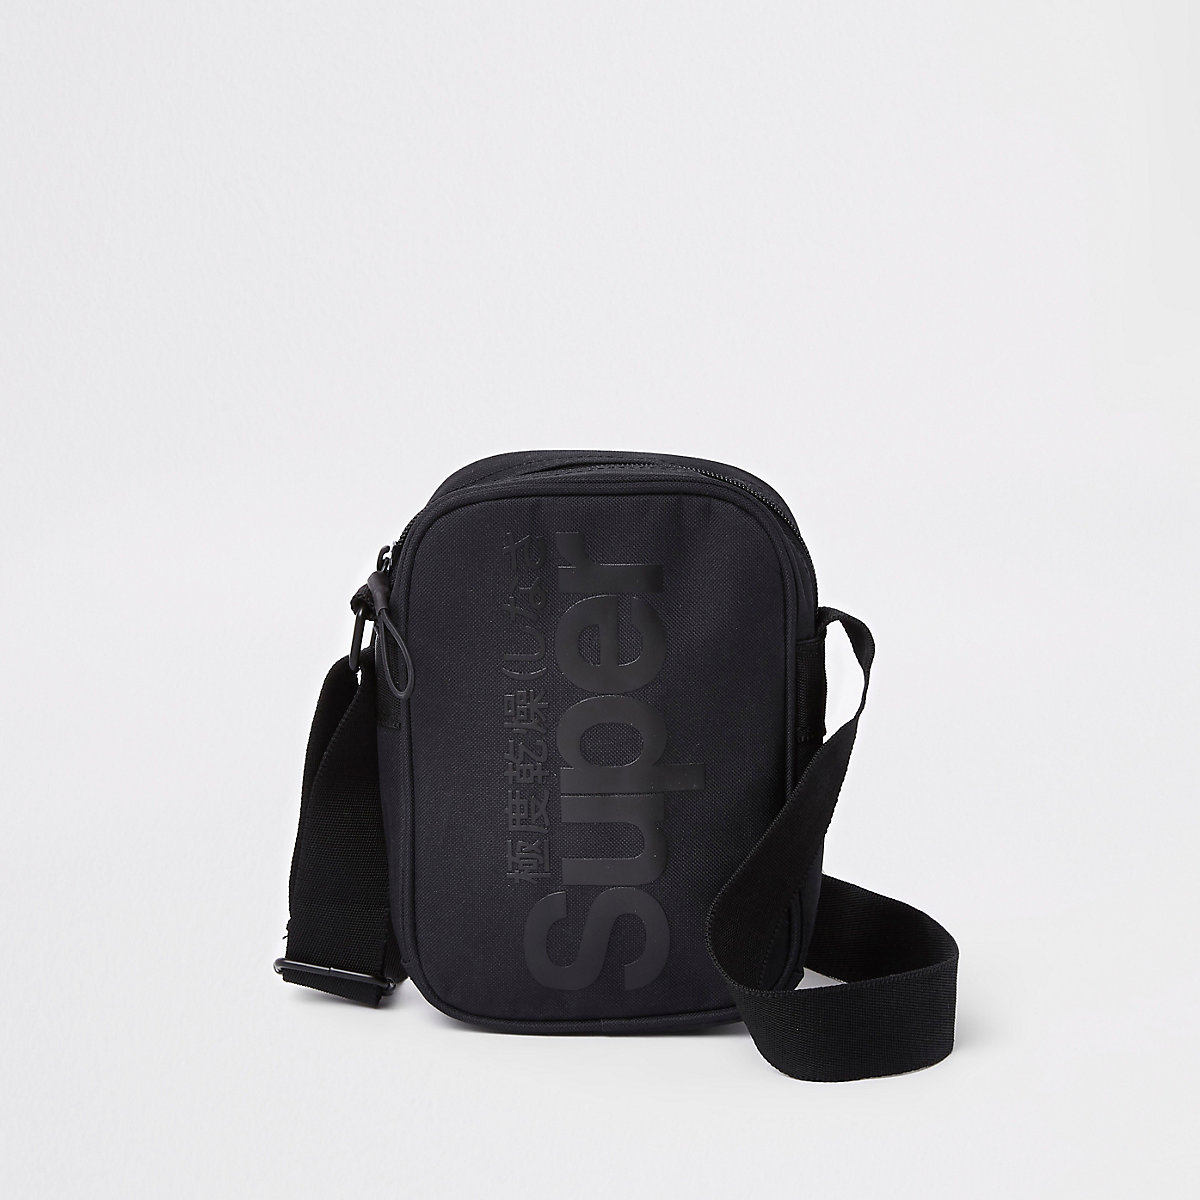 Superdry black cross body pouch